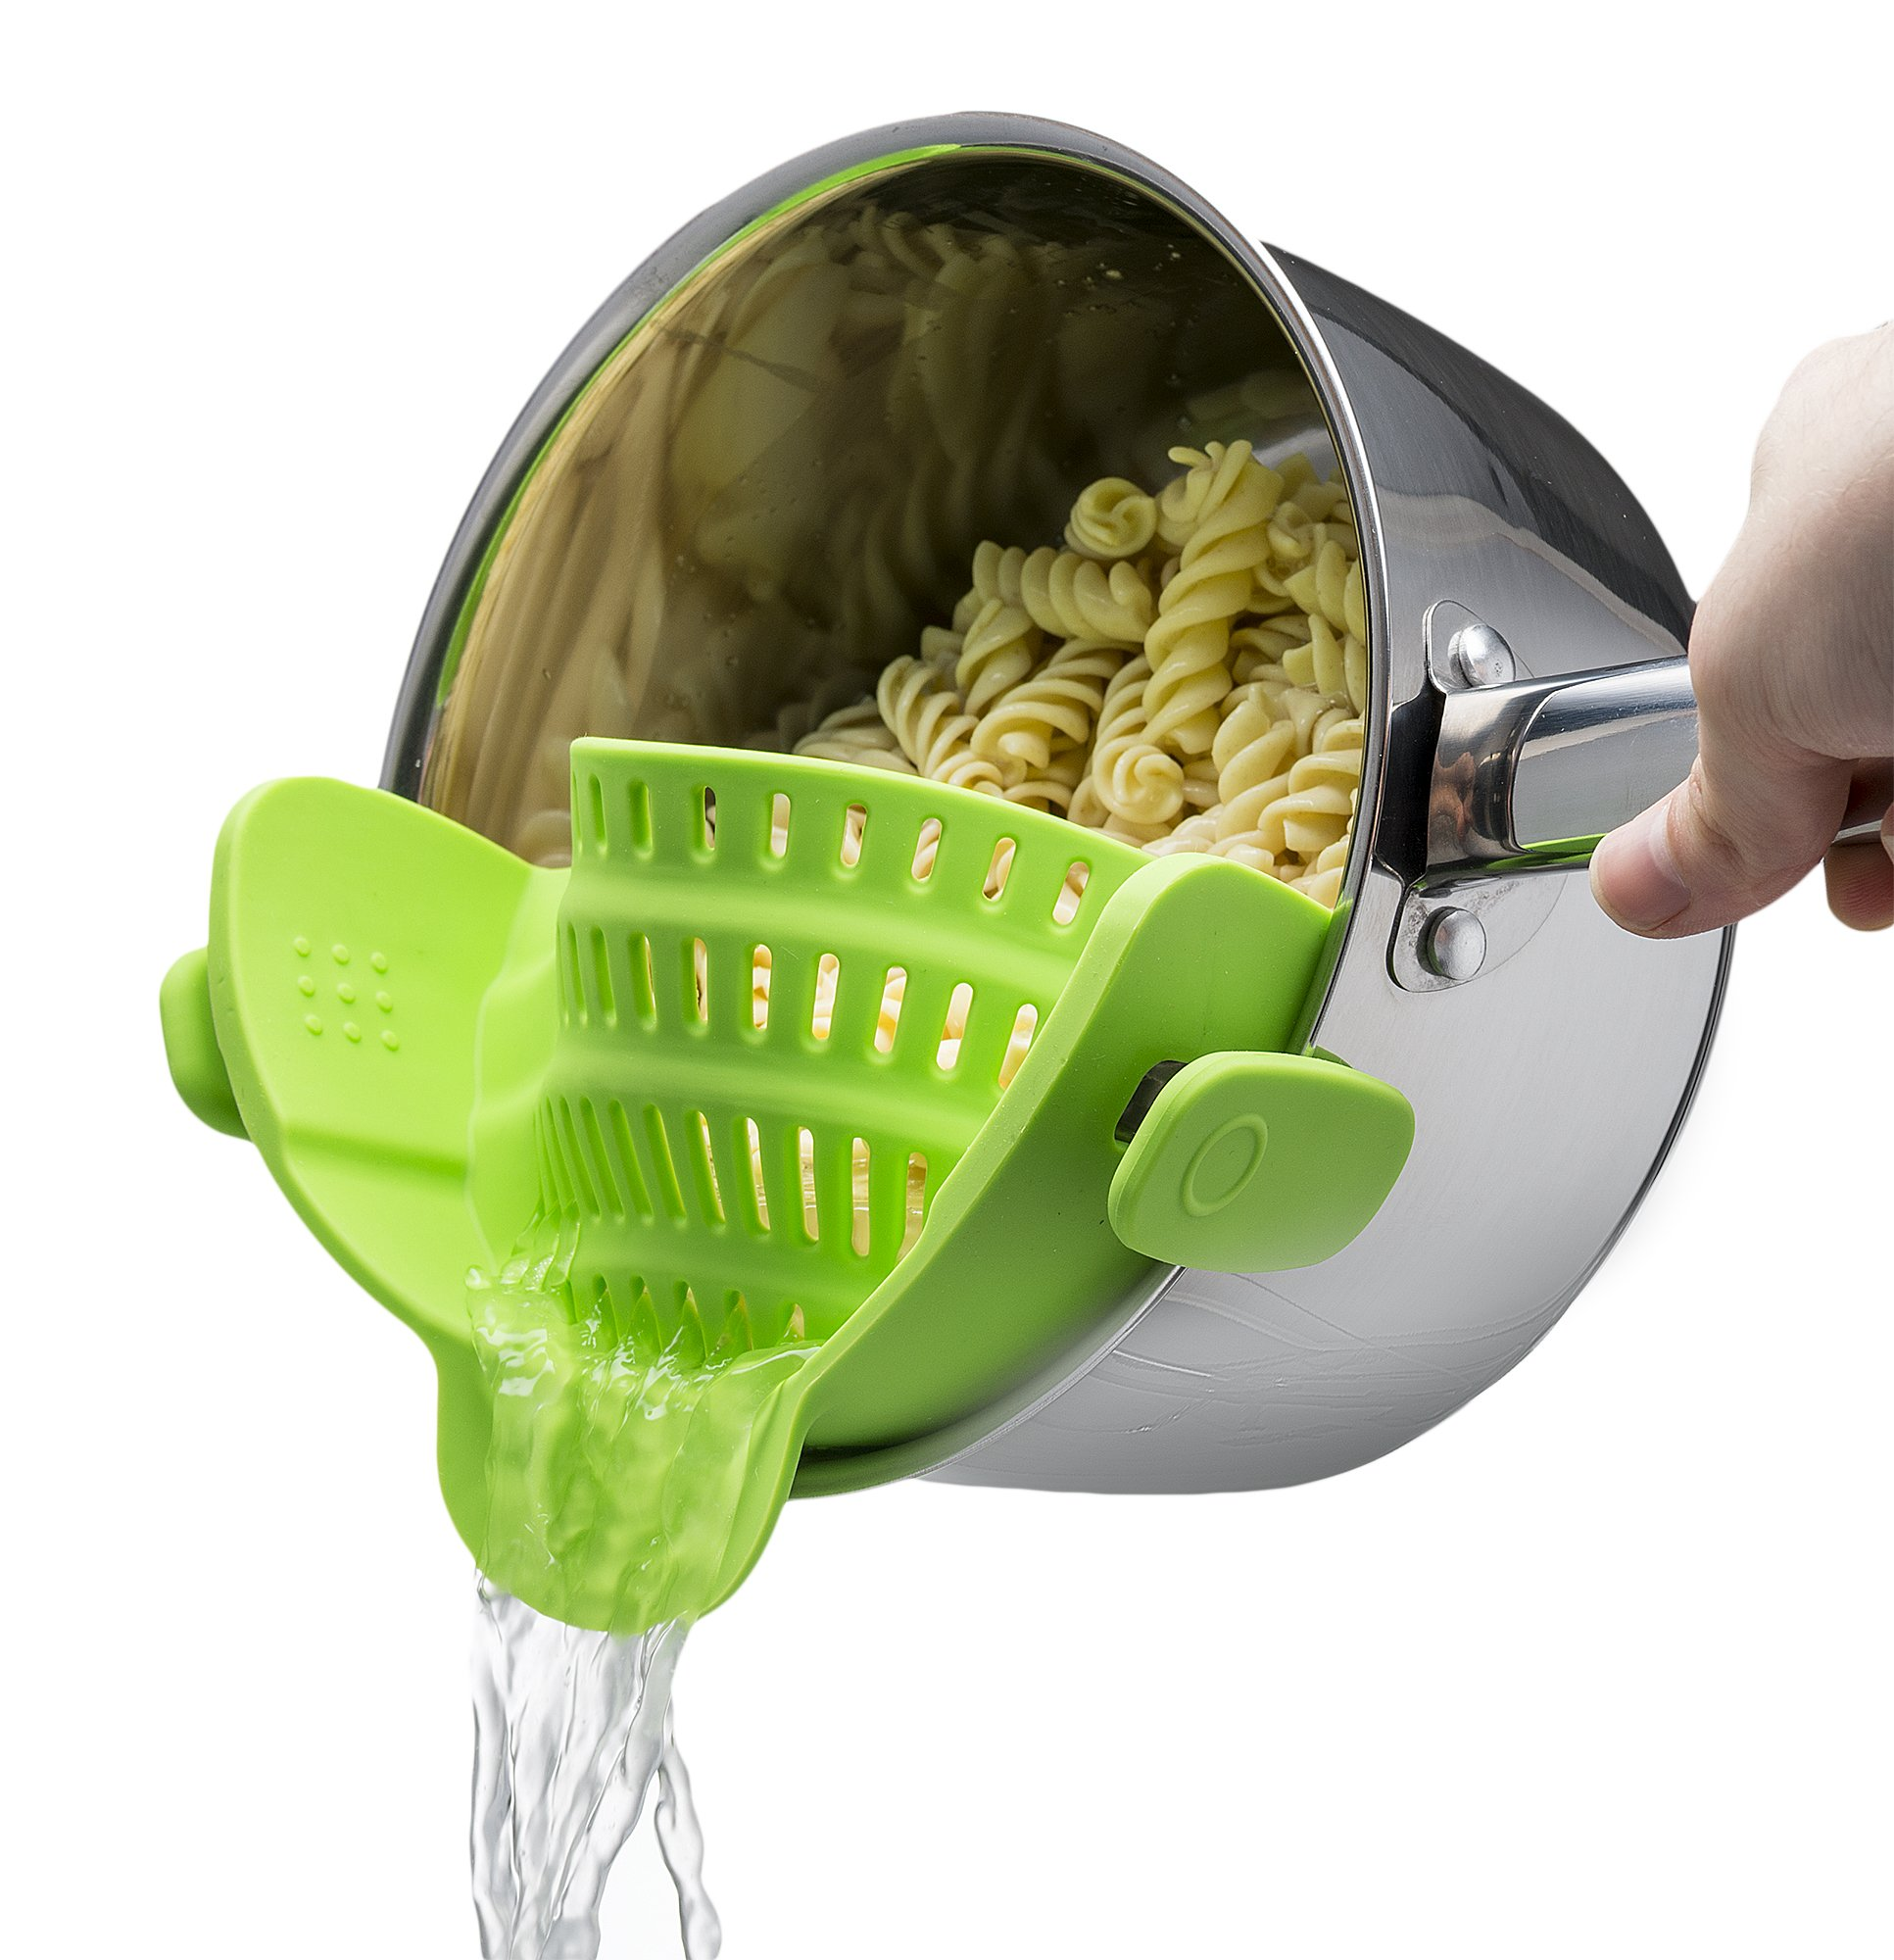 Kitchen Gizmo Snap 'N Strain Strainer, Clip On Silicone Colander, Fits all Pots and Bowls - Lime Green by Kitchen Gizmo